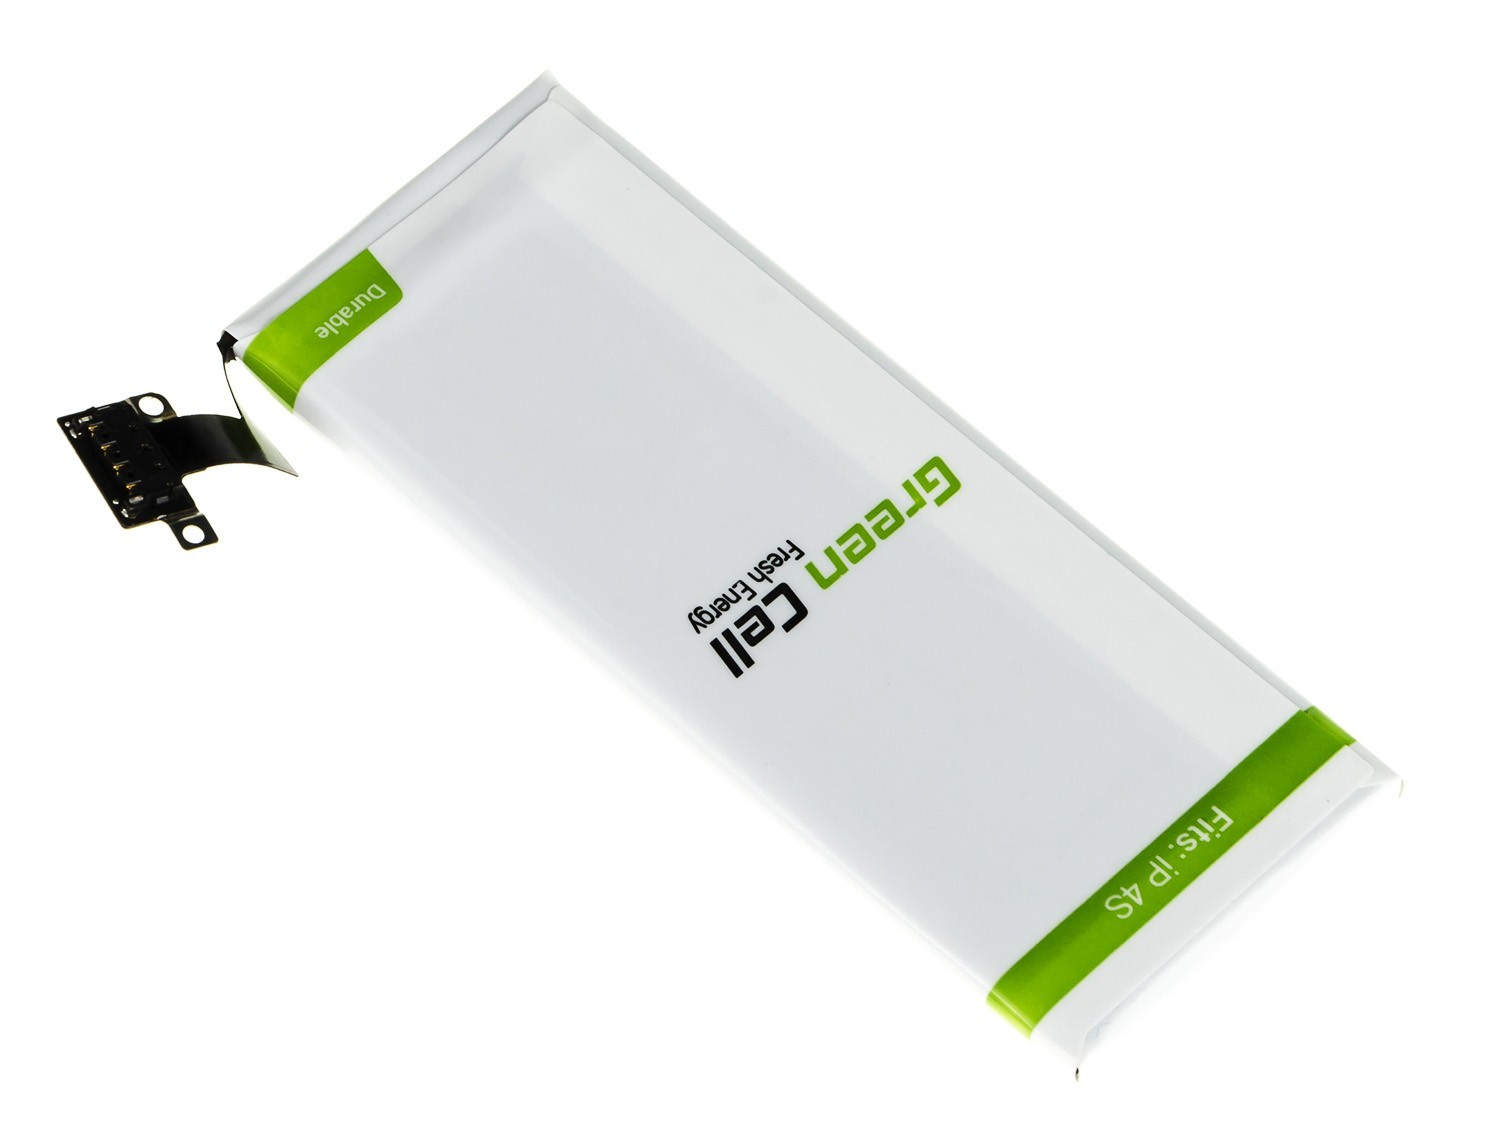 Baterie Green Cell Apple iPhone 4S 1430mAh Li-ion - neoriginální